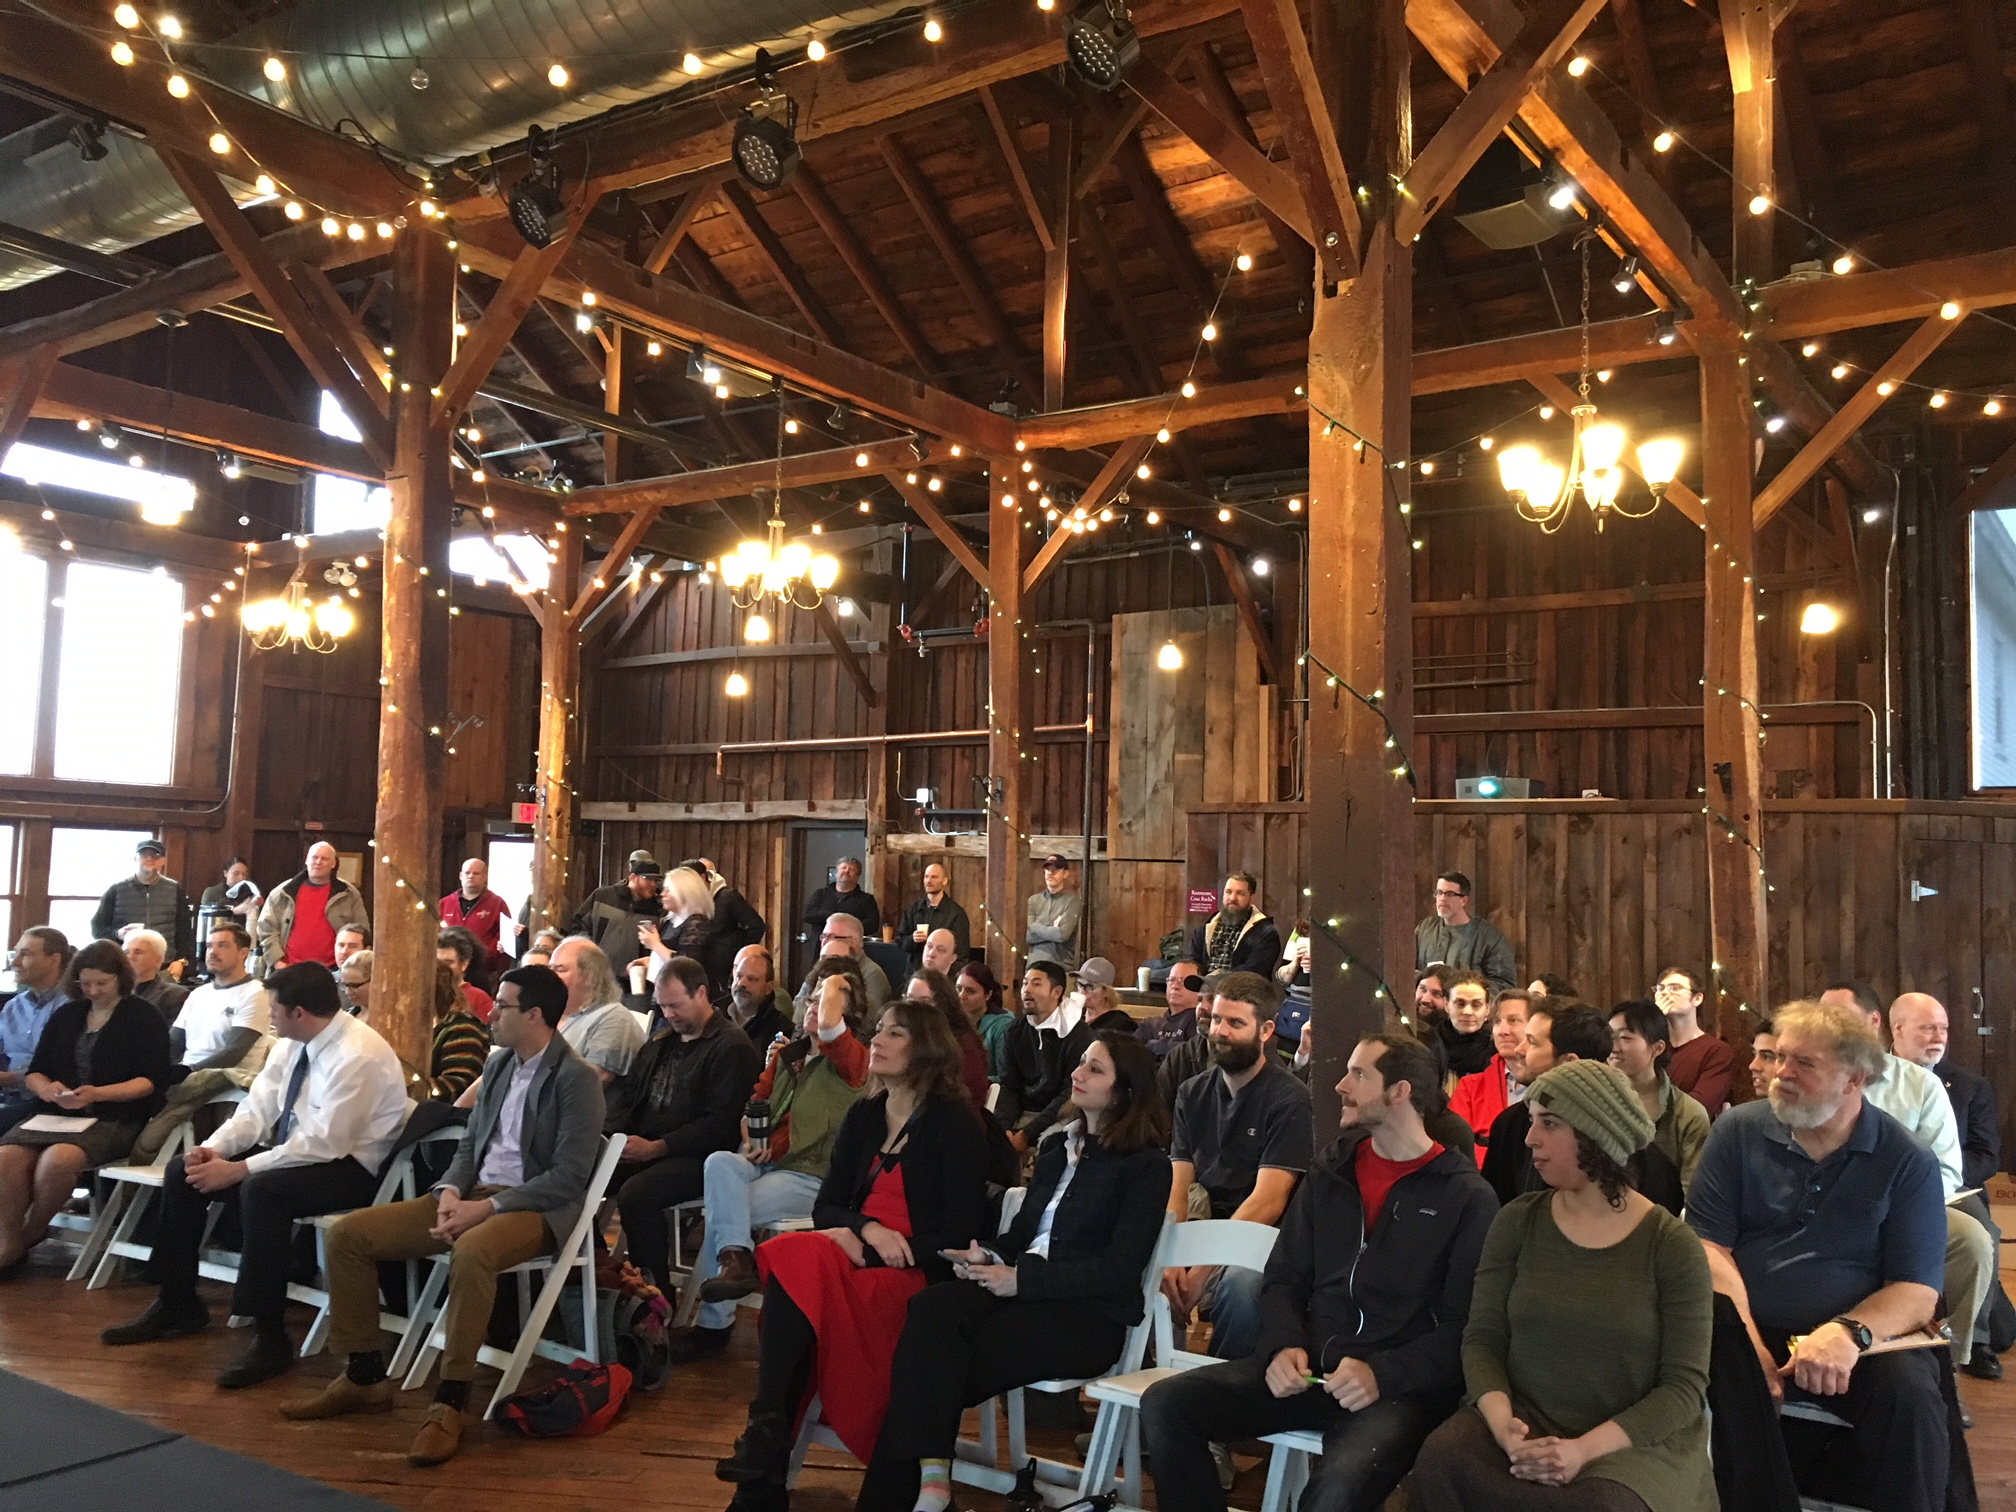 Cannabis industry leaders gather at Hampshire College summit to widen appeal of plant